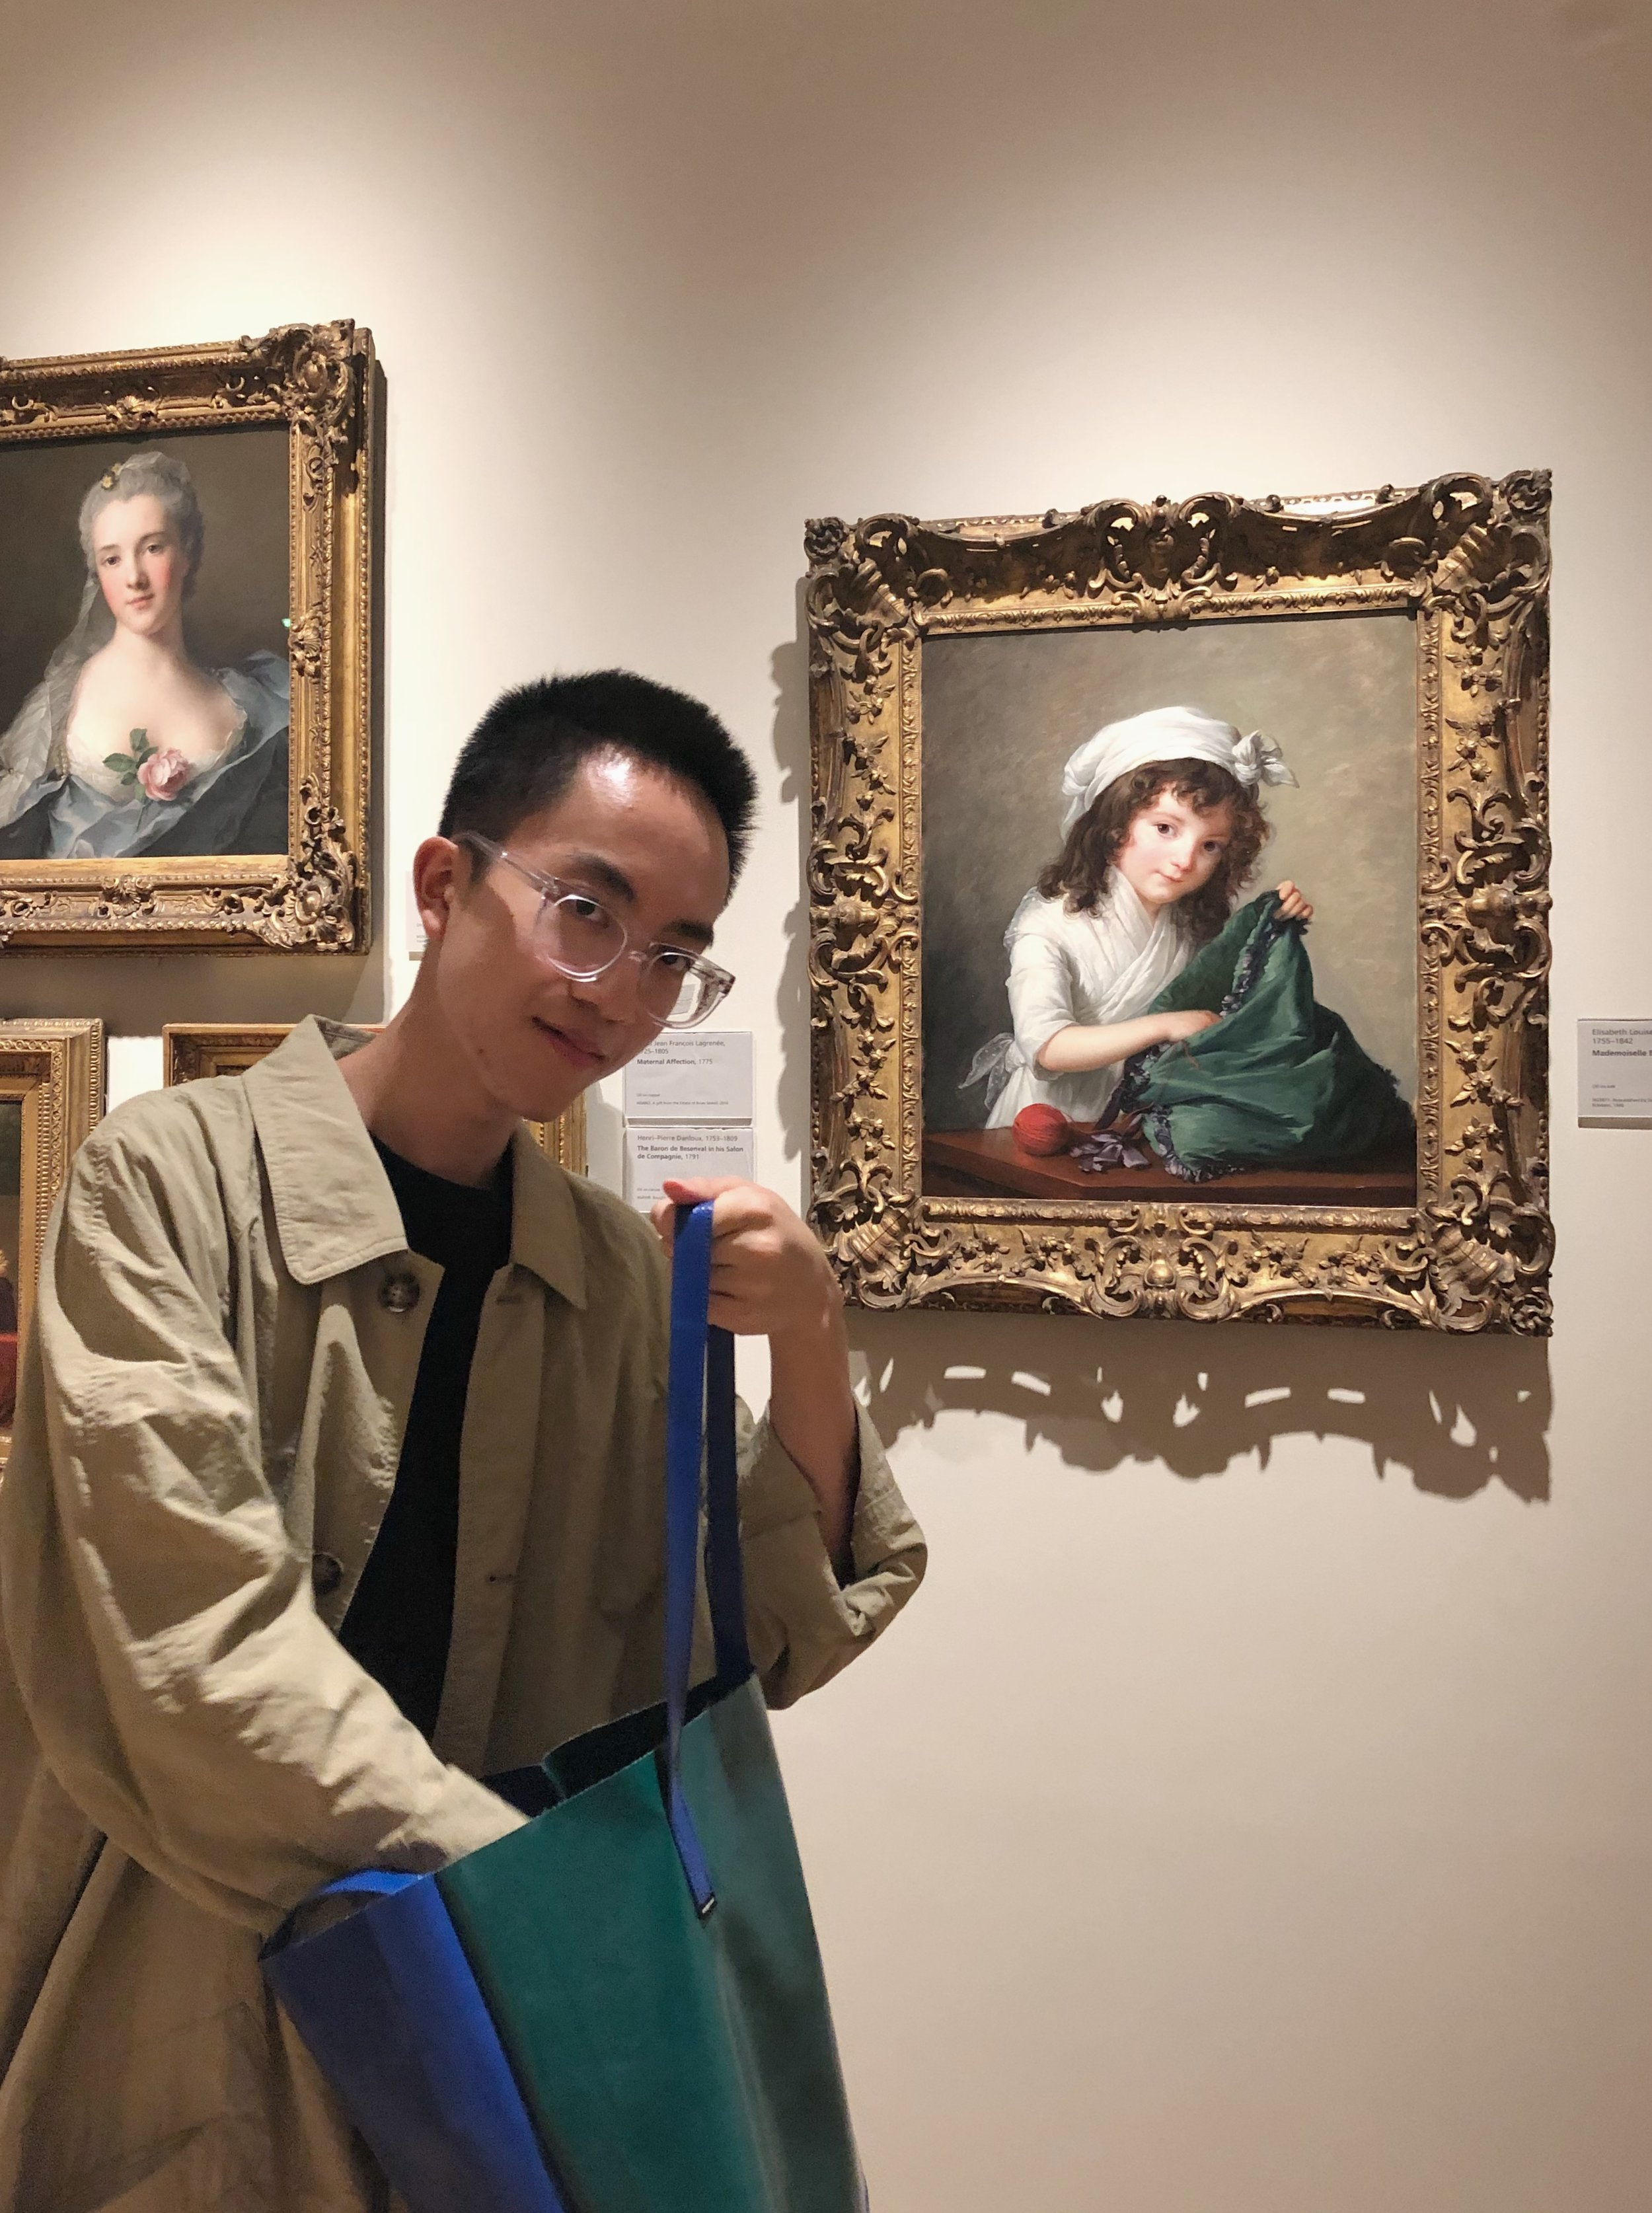 Meet field school blogger Ronald Chan, here performing a portrait vivant with an 18th century painting at the National Gallery.